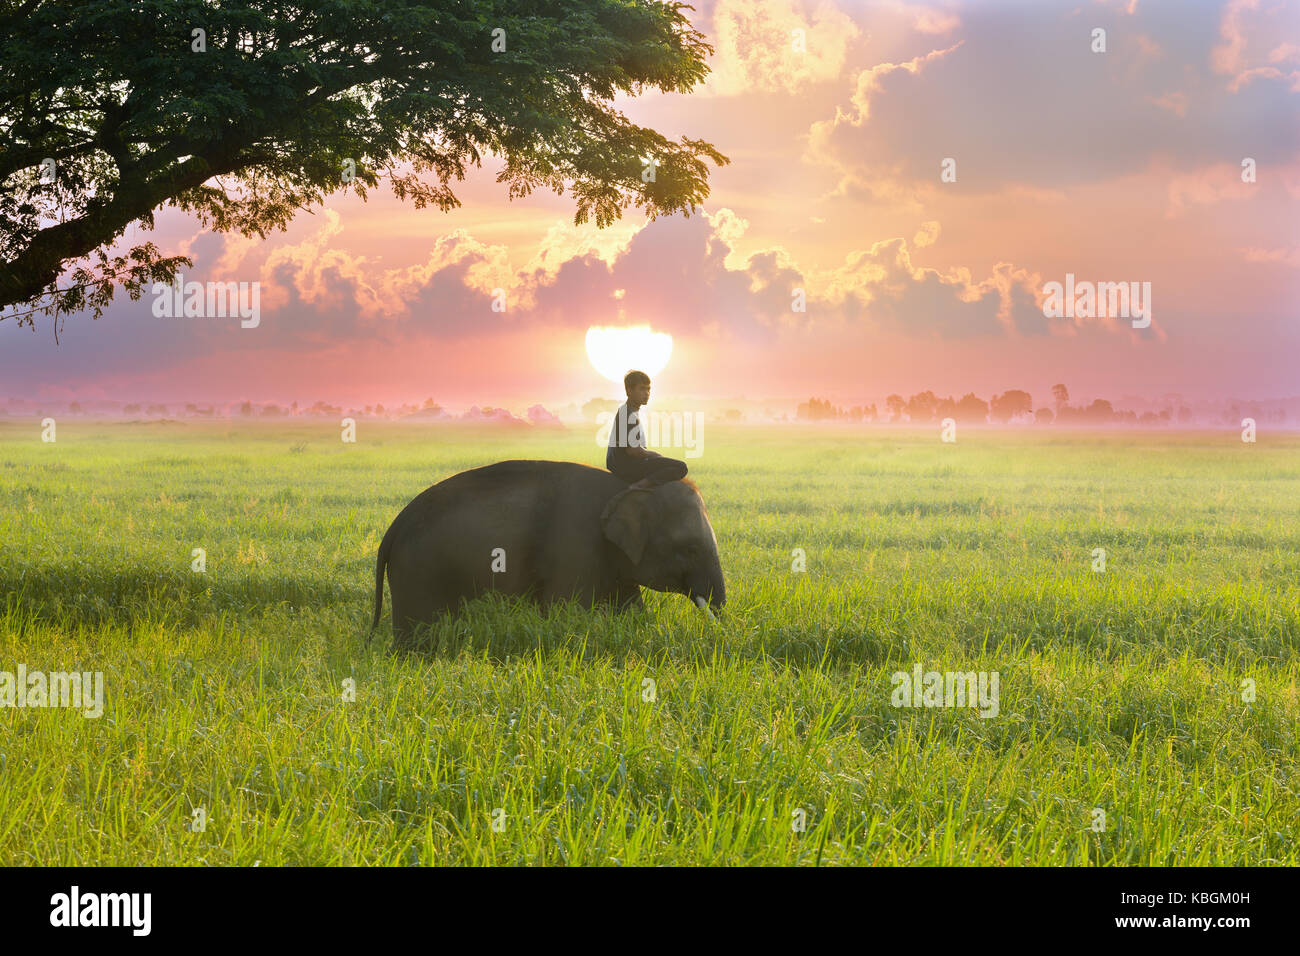 Thailand mahout and elephant are in the middle of the rice field with tree behind the sunrise on the beuatiful side. - Stock Image